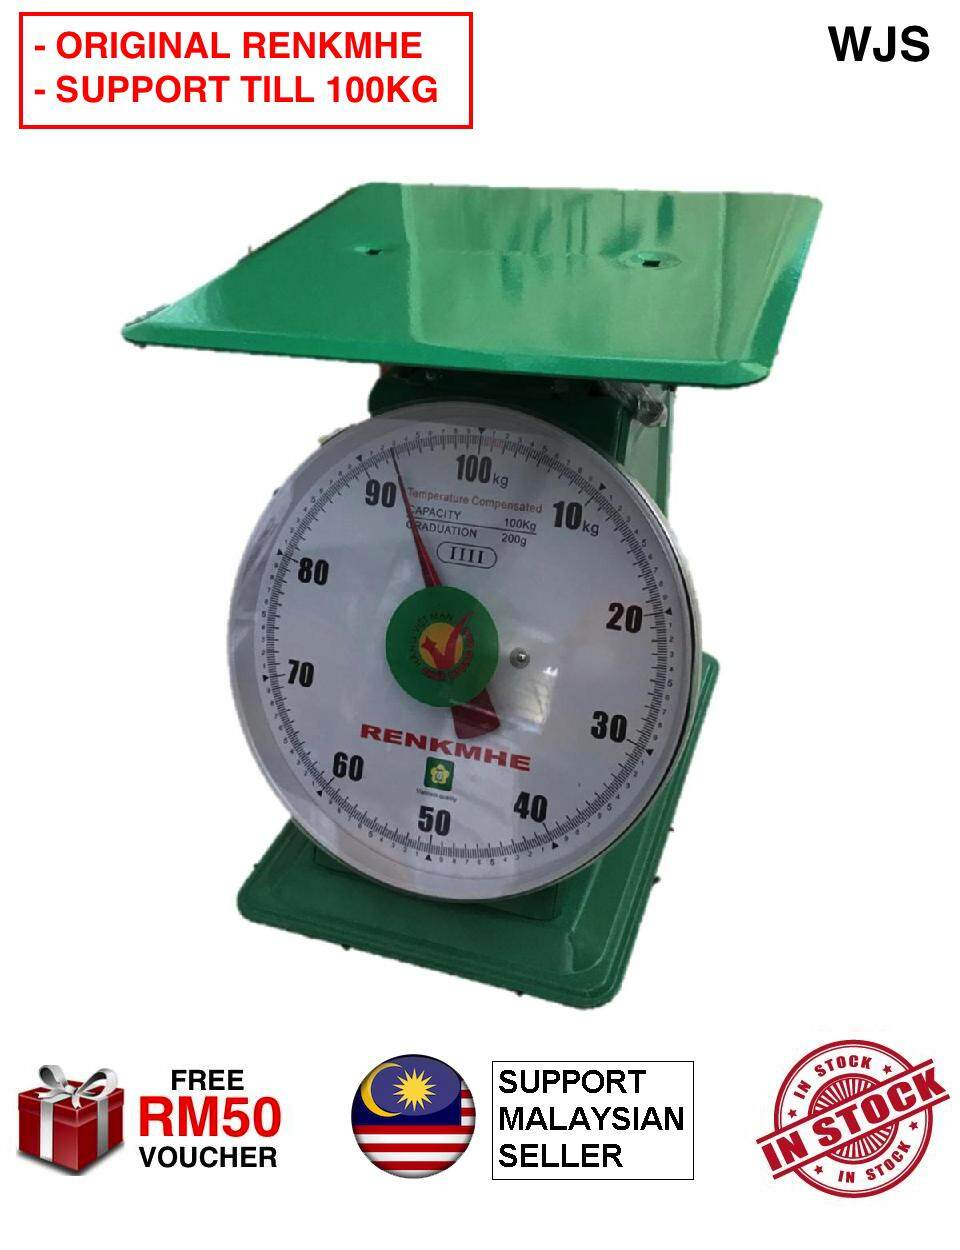 (ORIGINAL) WJS RENKMHE Analog Commercial Mechanical Weighing Scale Analog Scale Weighting Measurement Tool Market Scale Mechanical Scale Heavy Industry Scale GREEN 50KG 100KG [FREE RM 50 VOUCHER]